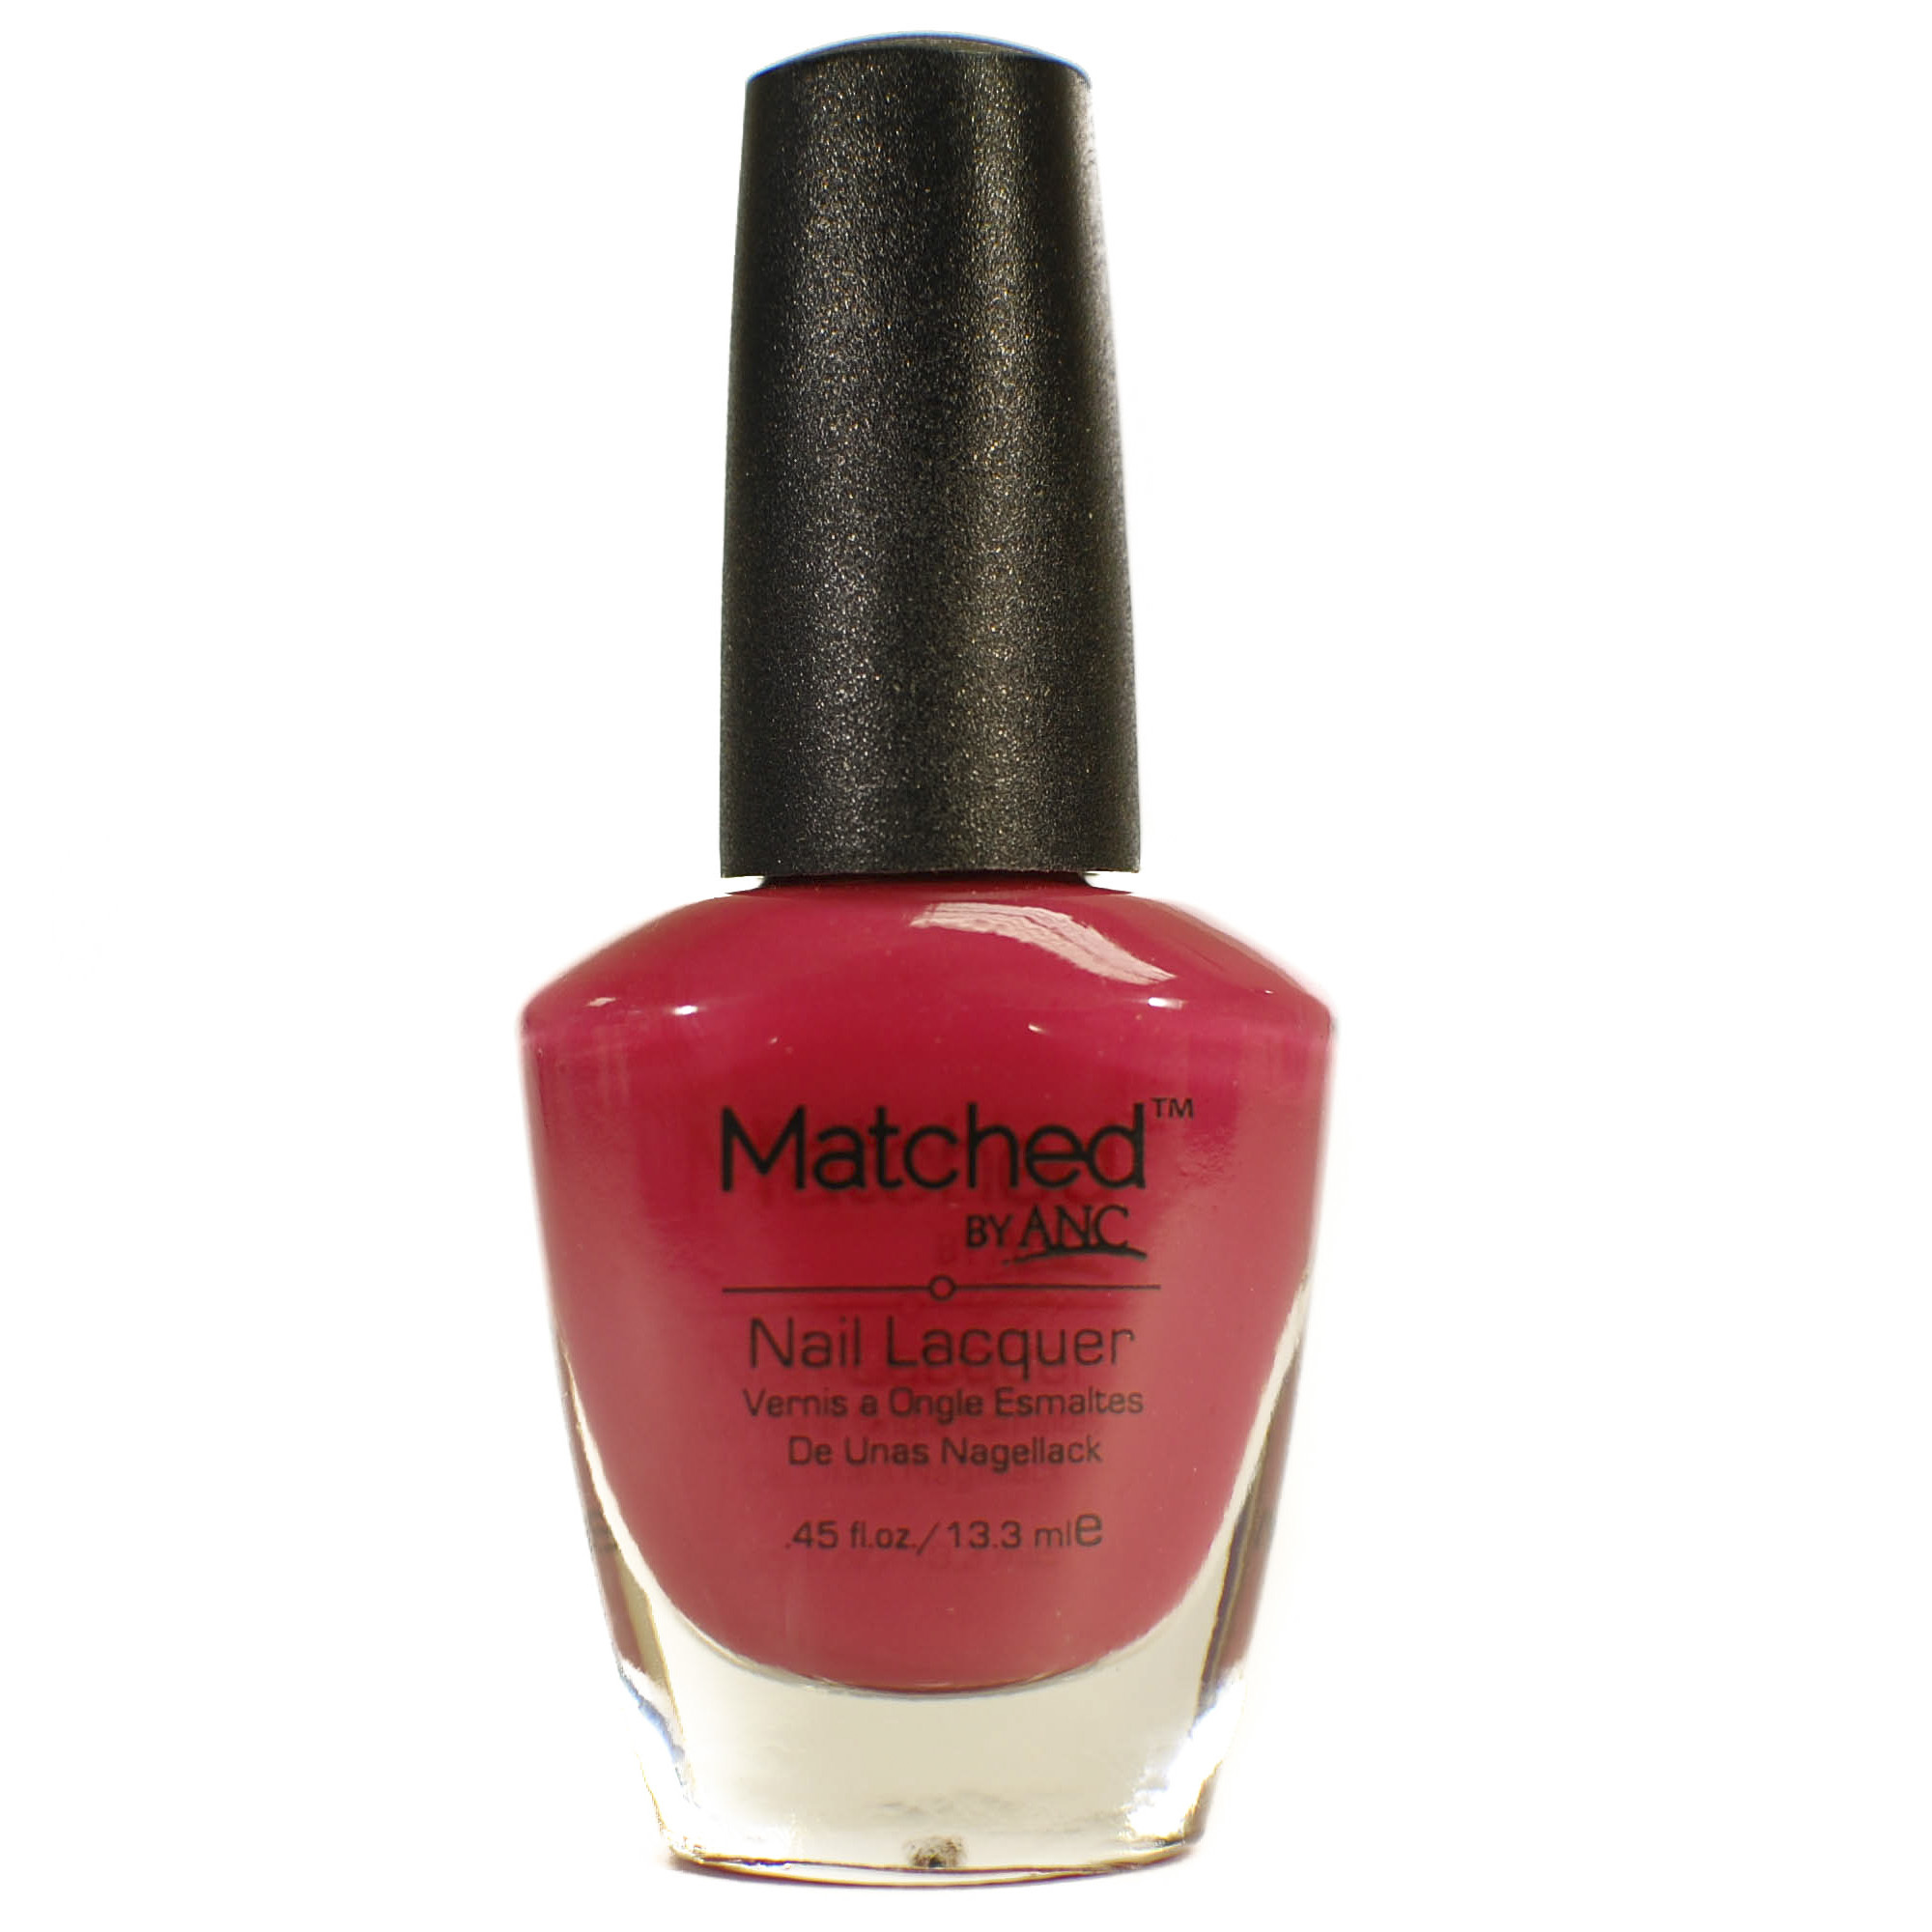 40 Matched™ Polish by ANC   Amazing Nail Concepts   French Dip ...